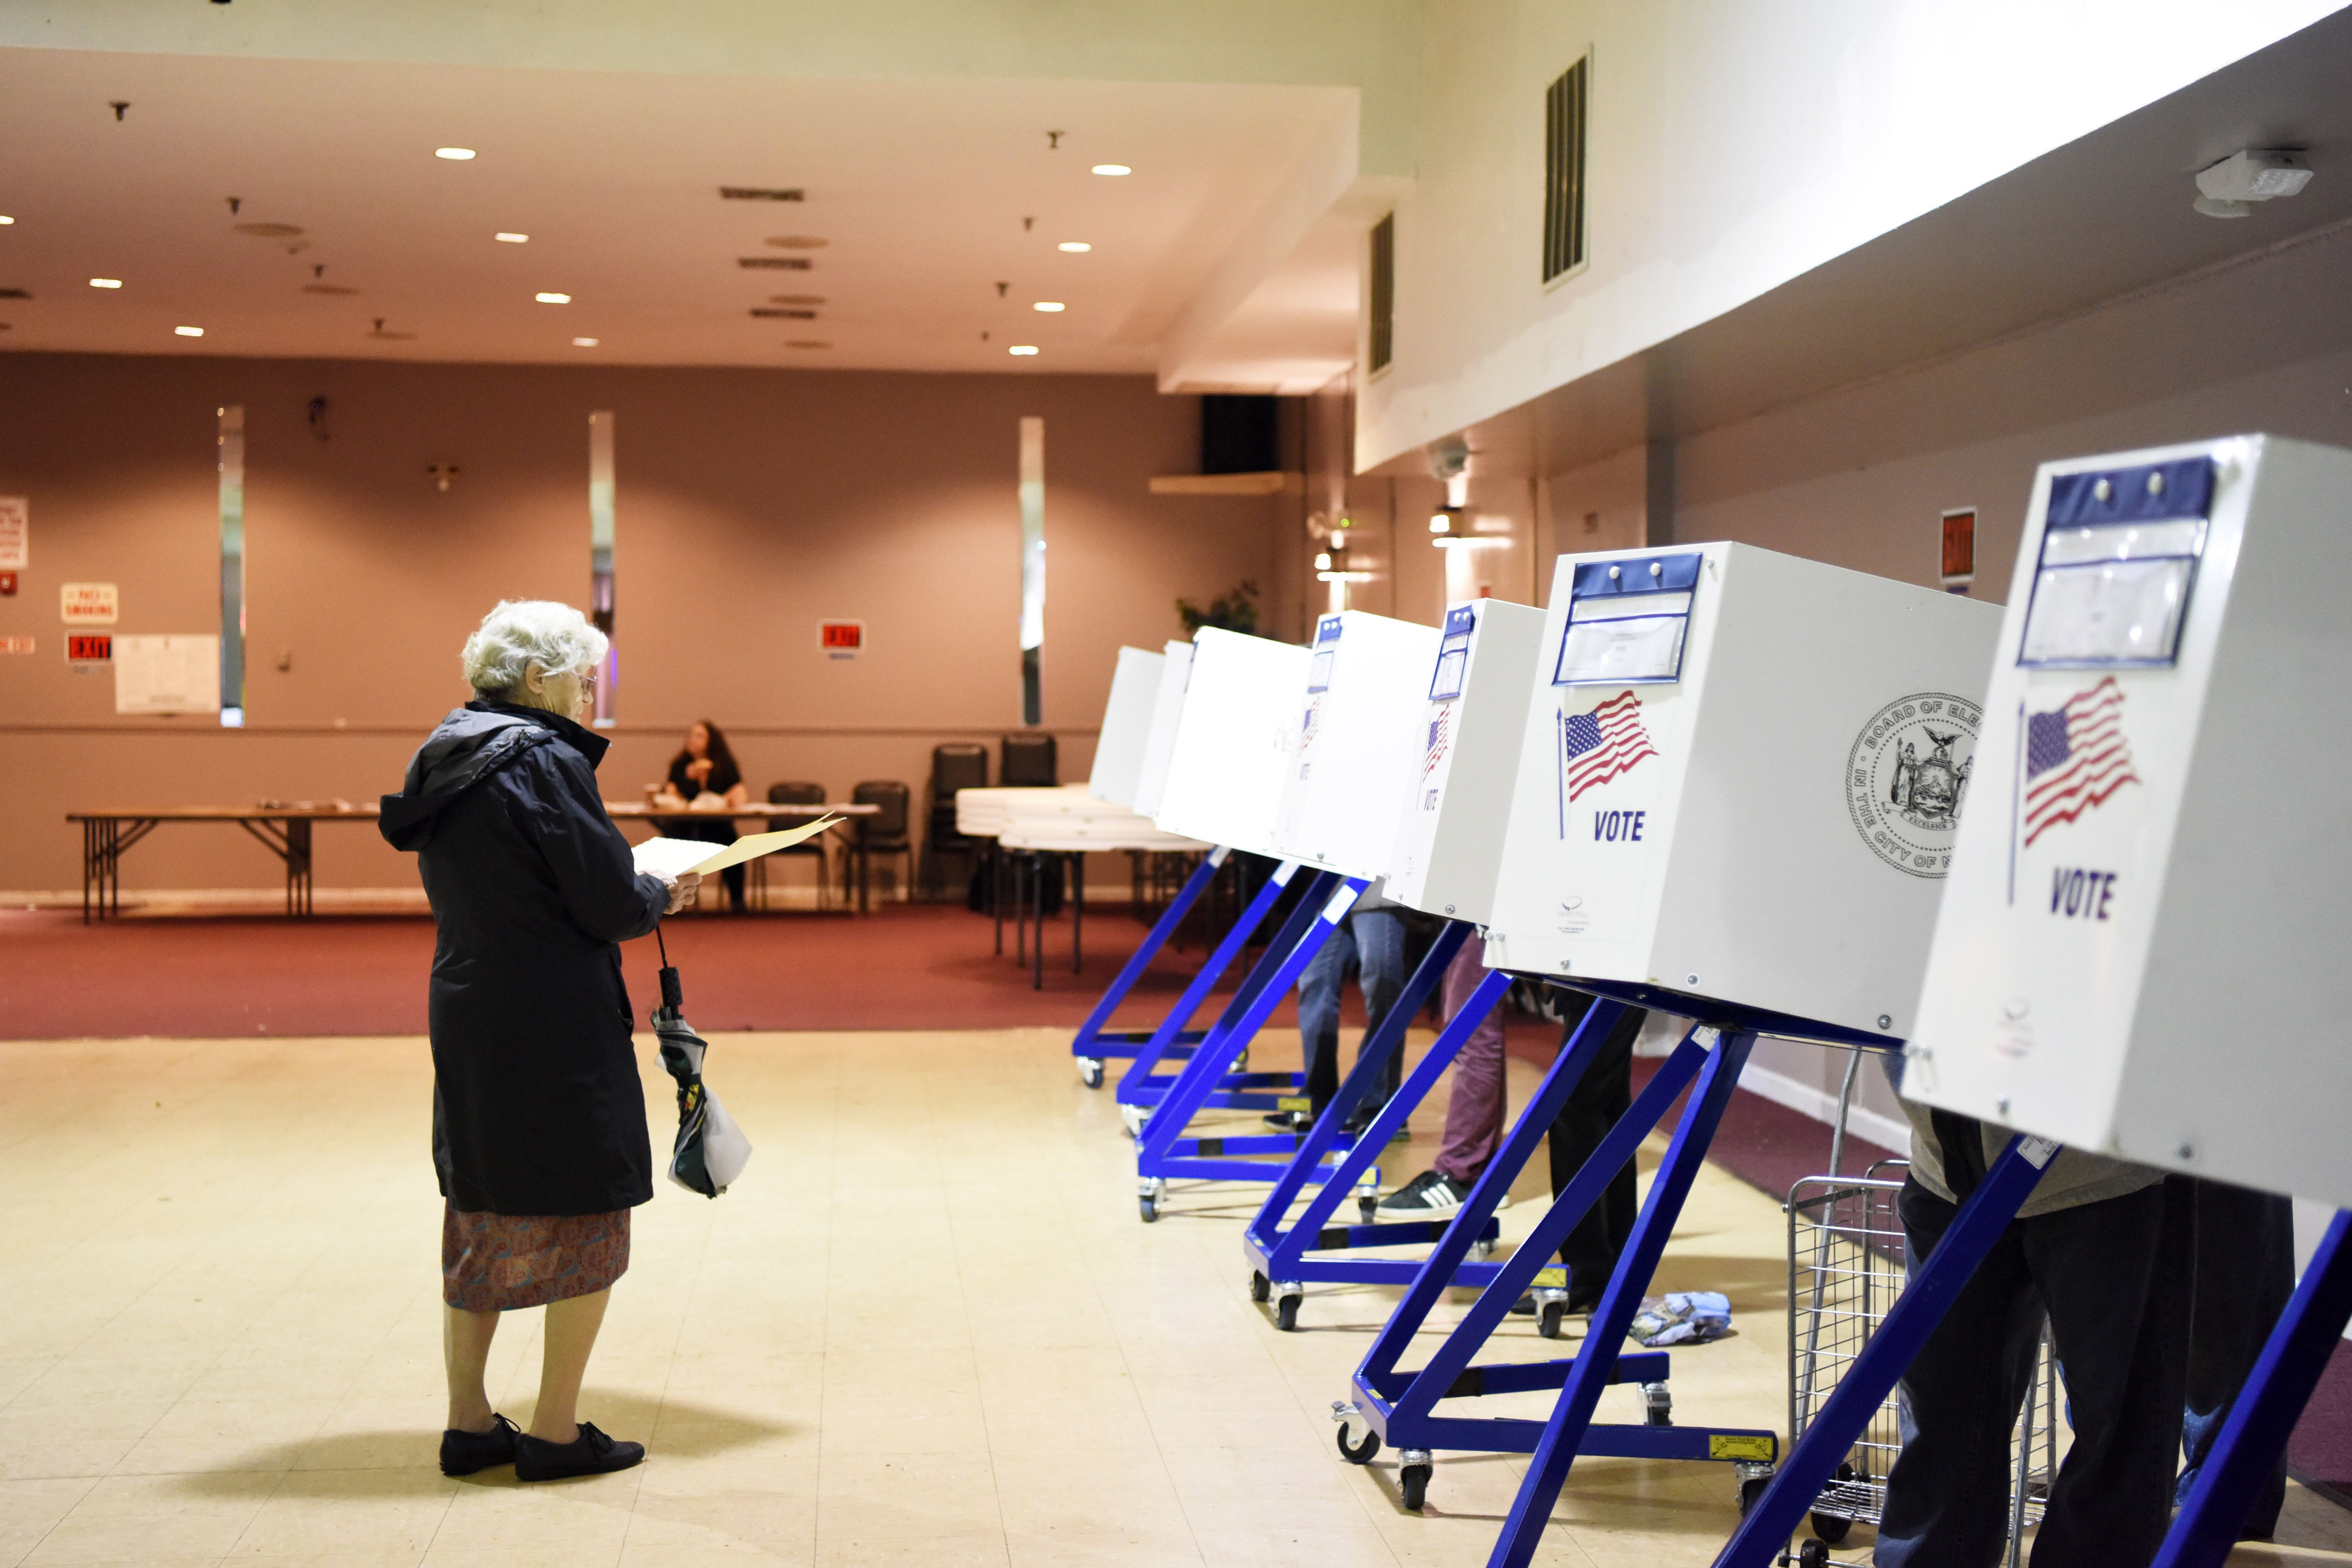 In policy shift, FBI will now notify state officials about election hacking